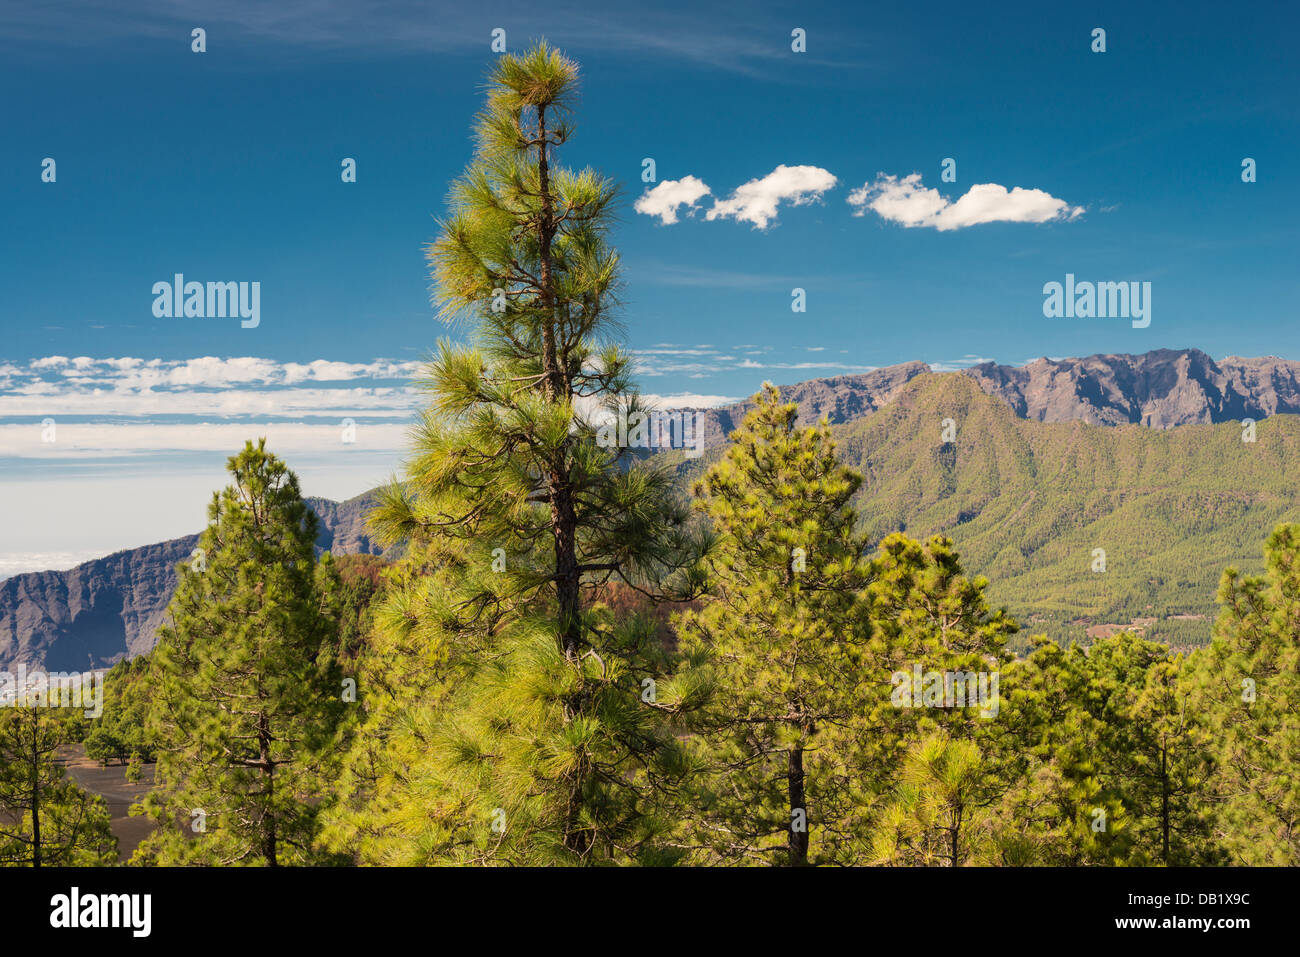 View northwards from Llano de Jable towards Pico Bejenado and Caldera de Taburiente, La Palma, Canary Islands - Stock Image